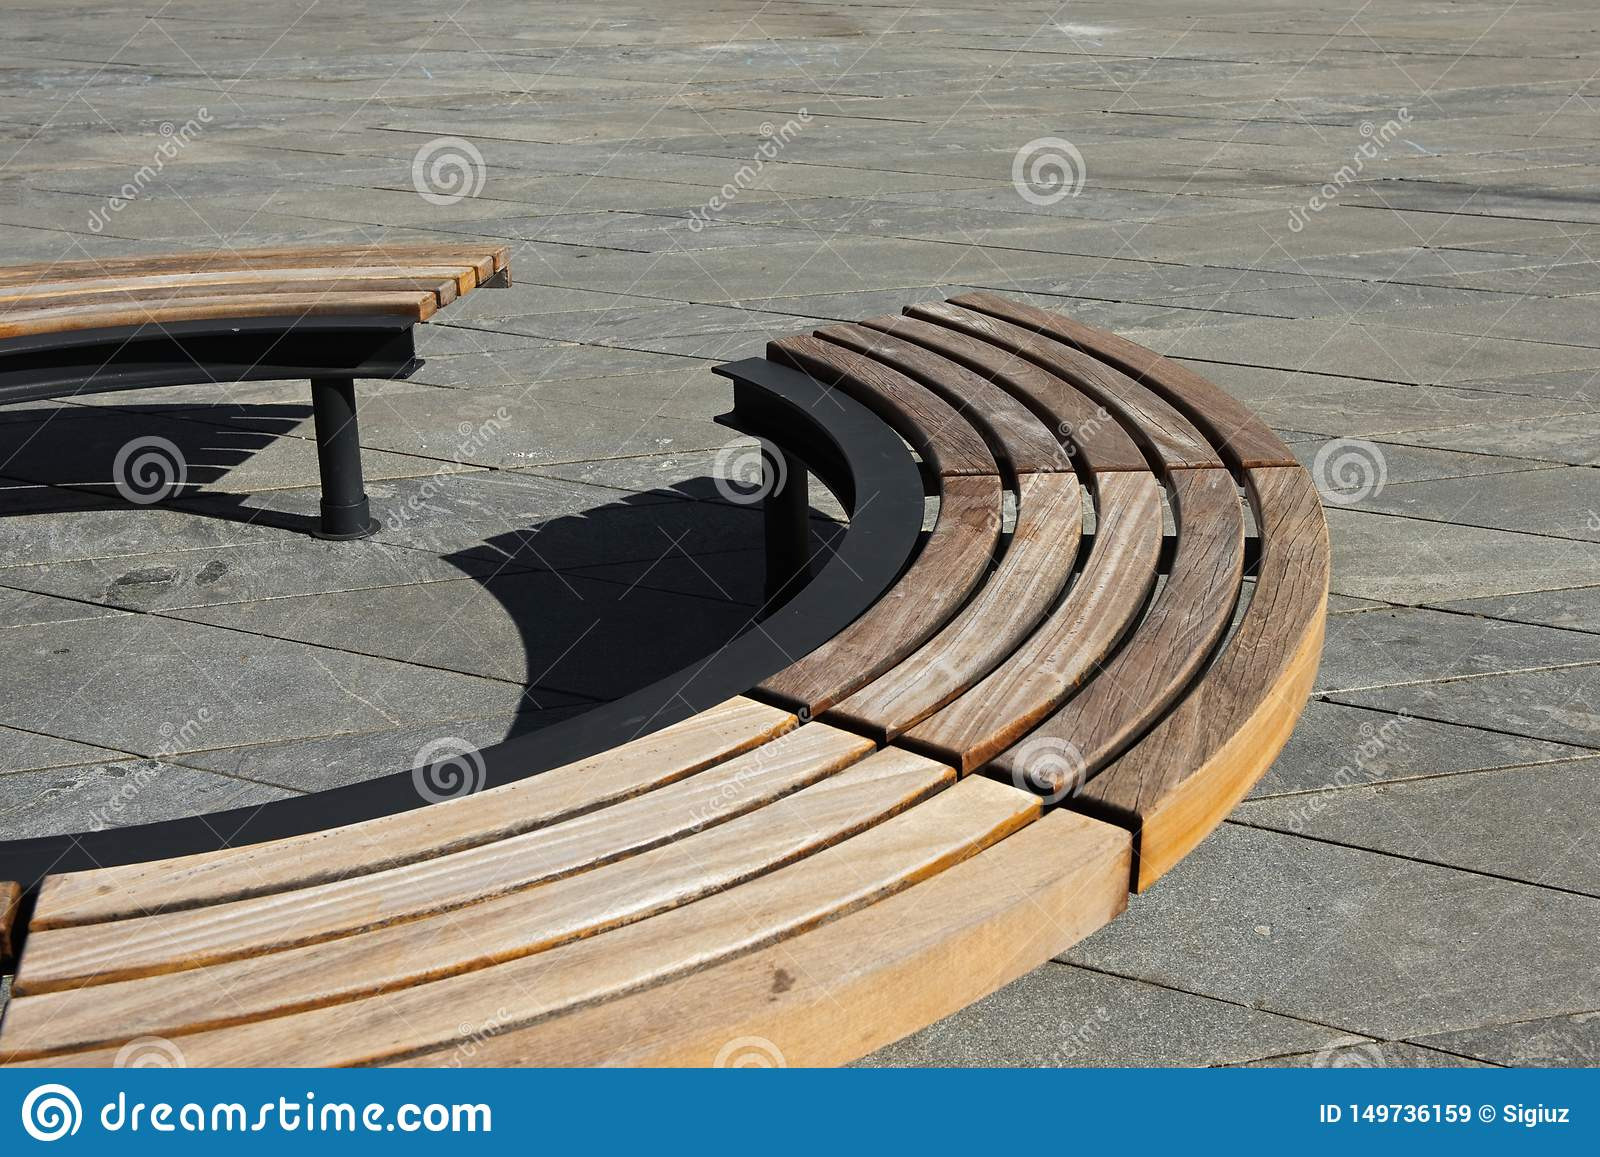 Wondrous Wooden Modern Design Round Circular Park Bench Stock Image Cjindustries Chair Design For Home Cjindustriesco